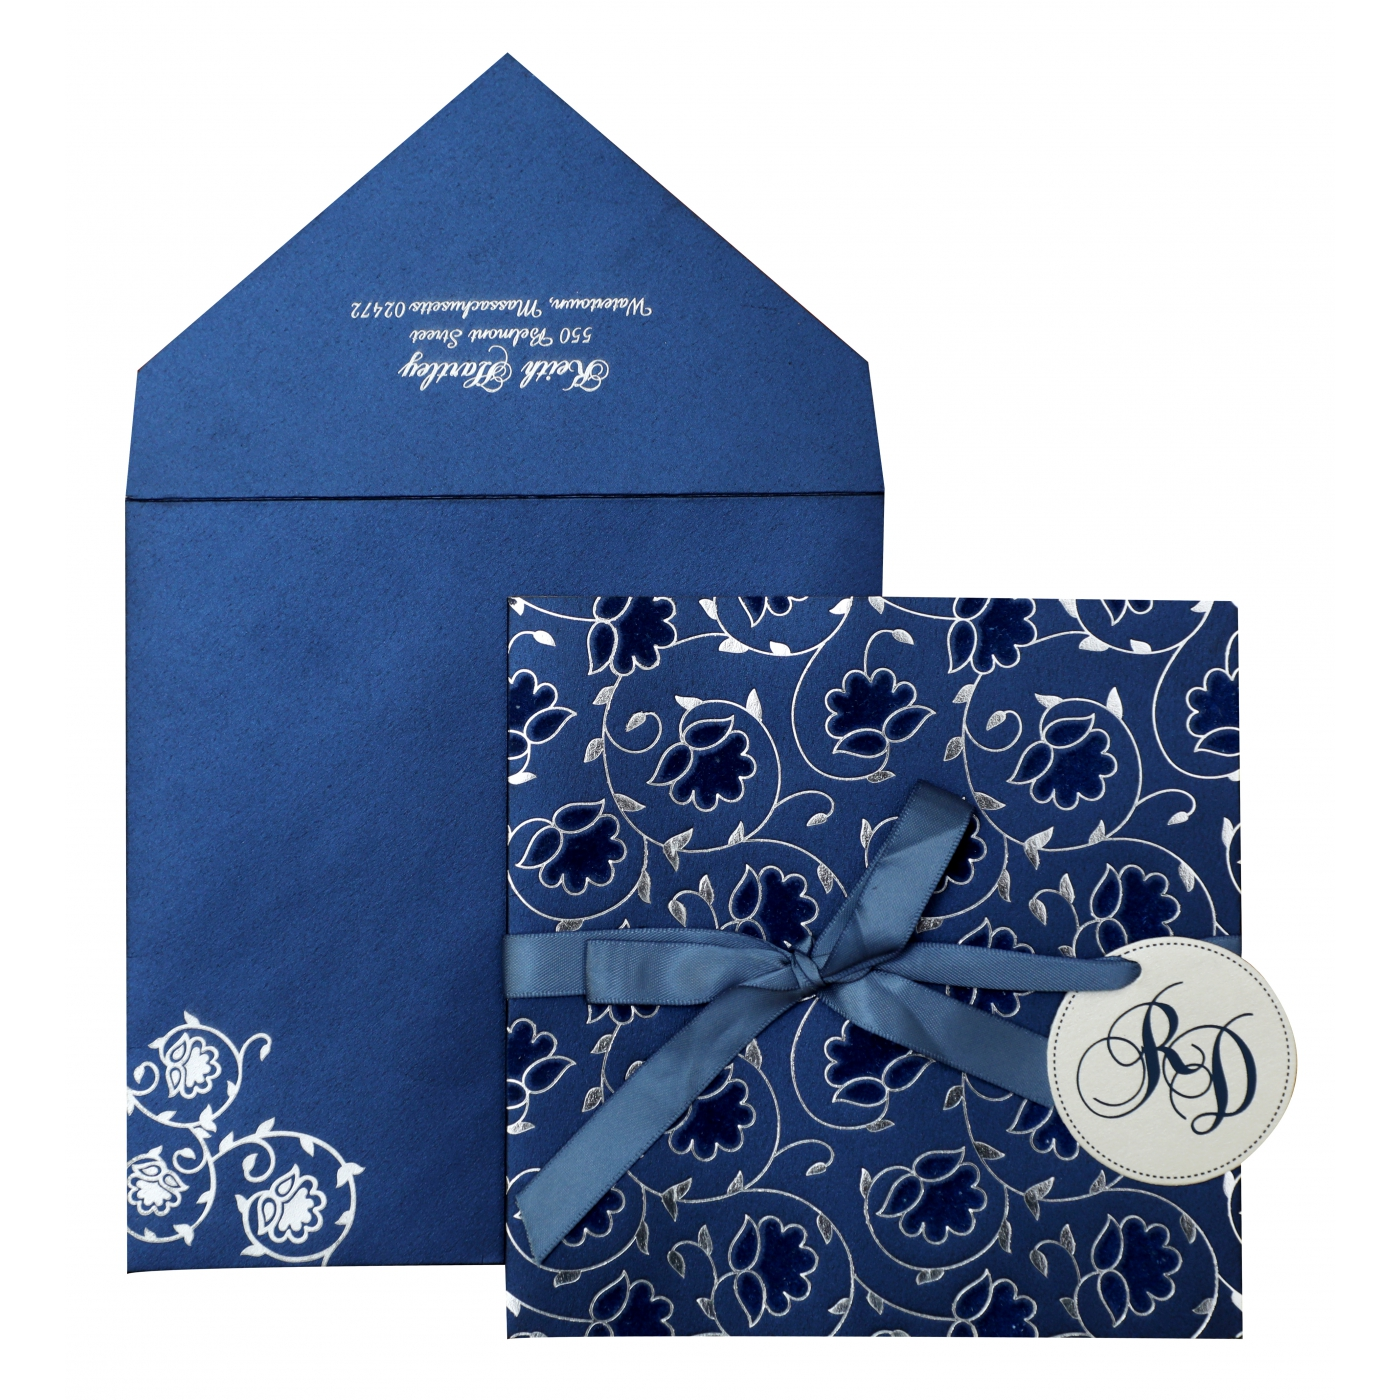 BLUE WHITE SHIMMERY FLORAL THEMED - FOIL STAMPED WEDDING INVITATION : AW-839 - A2zWeddingCards